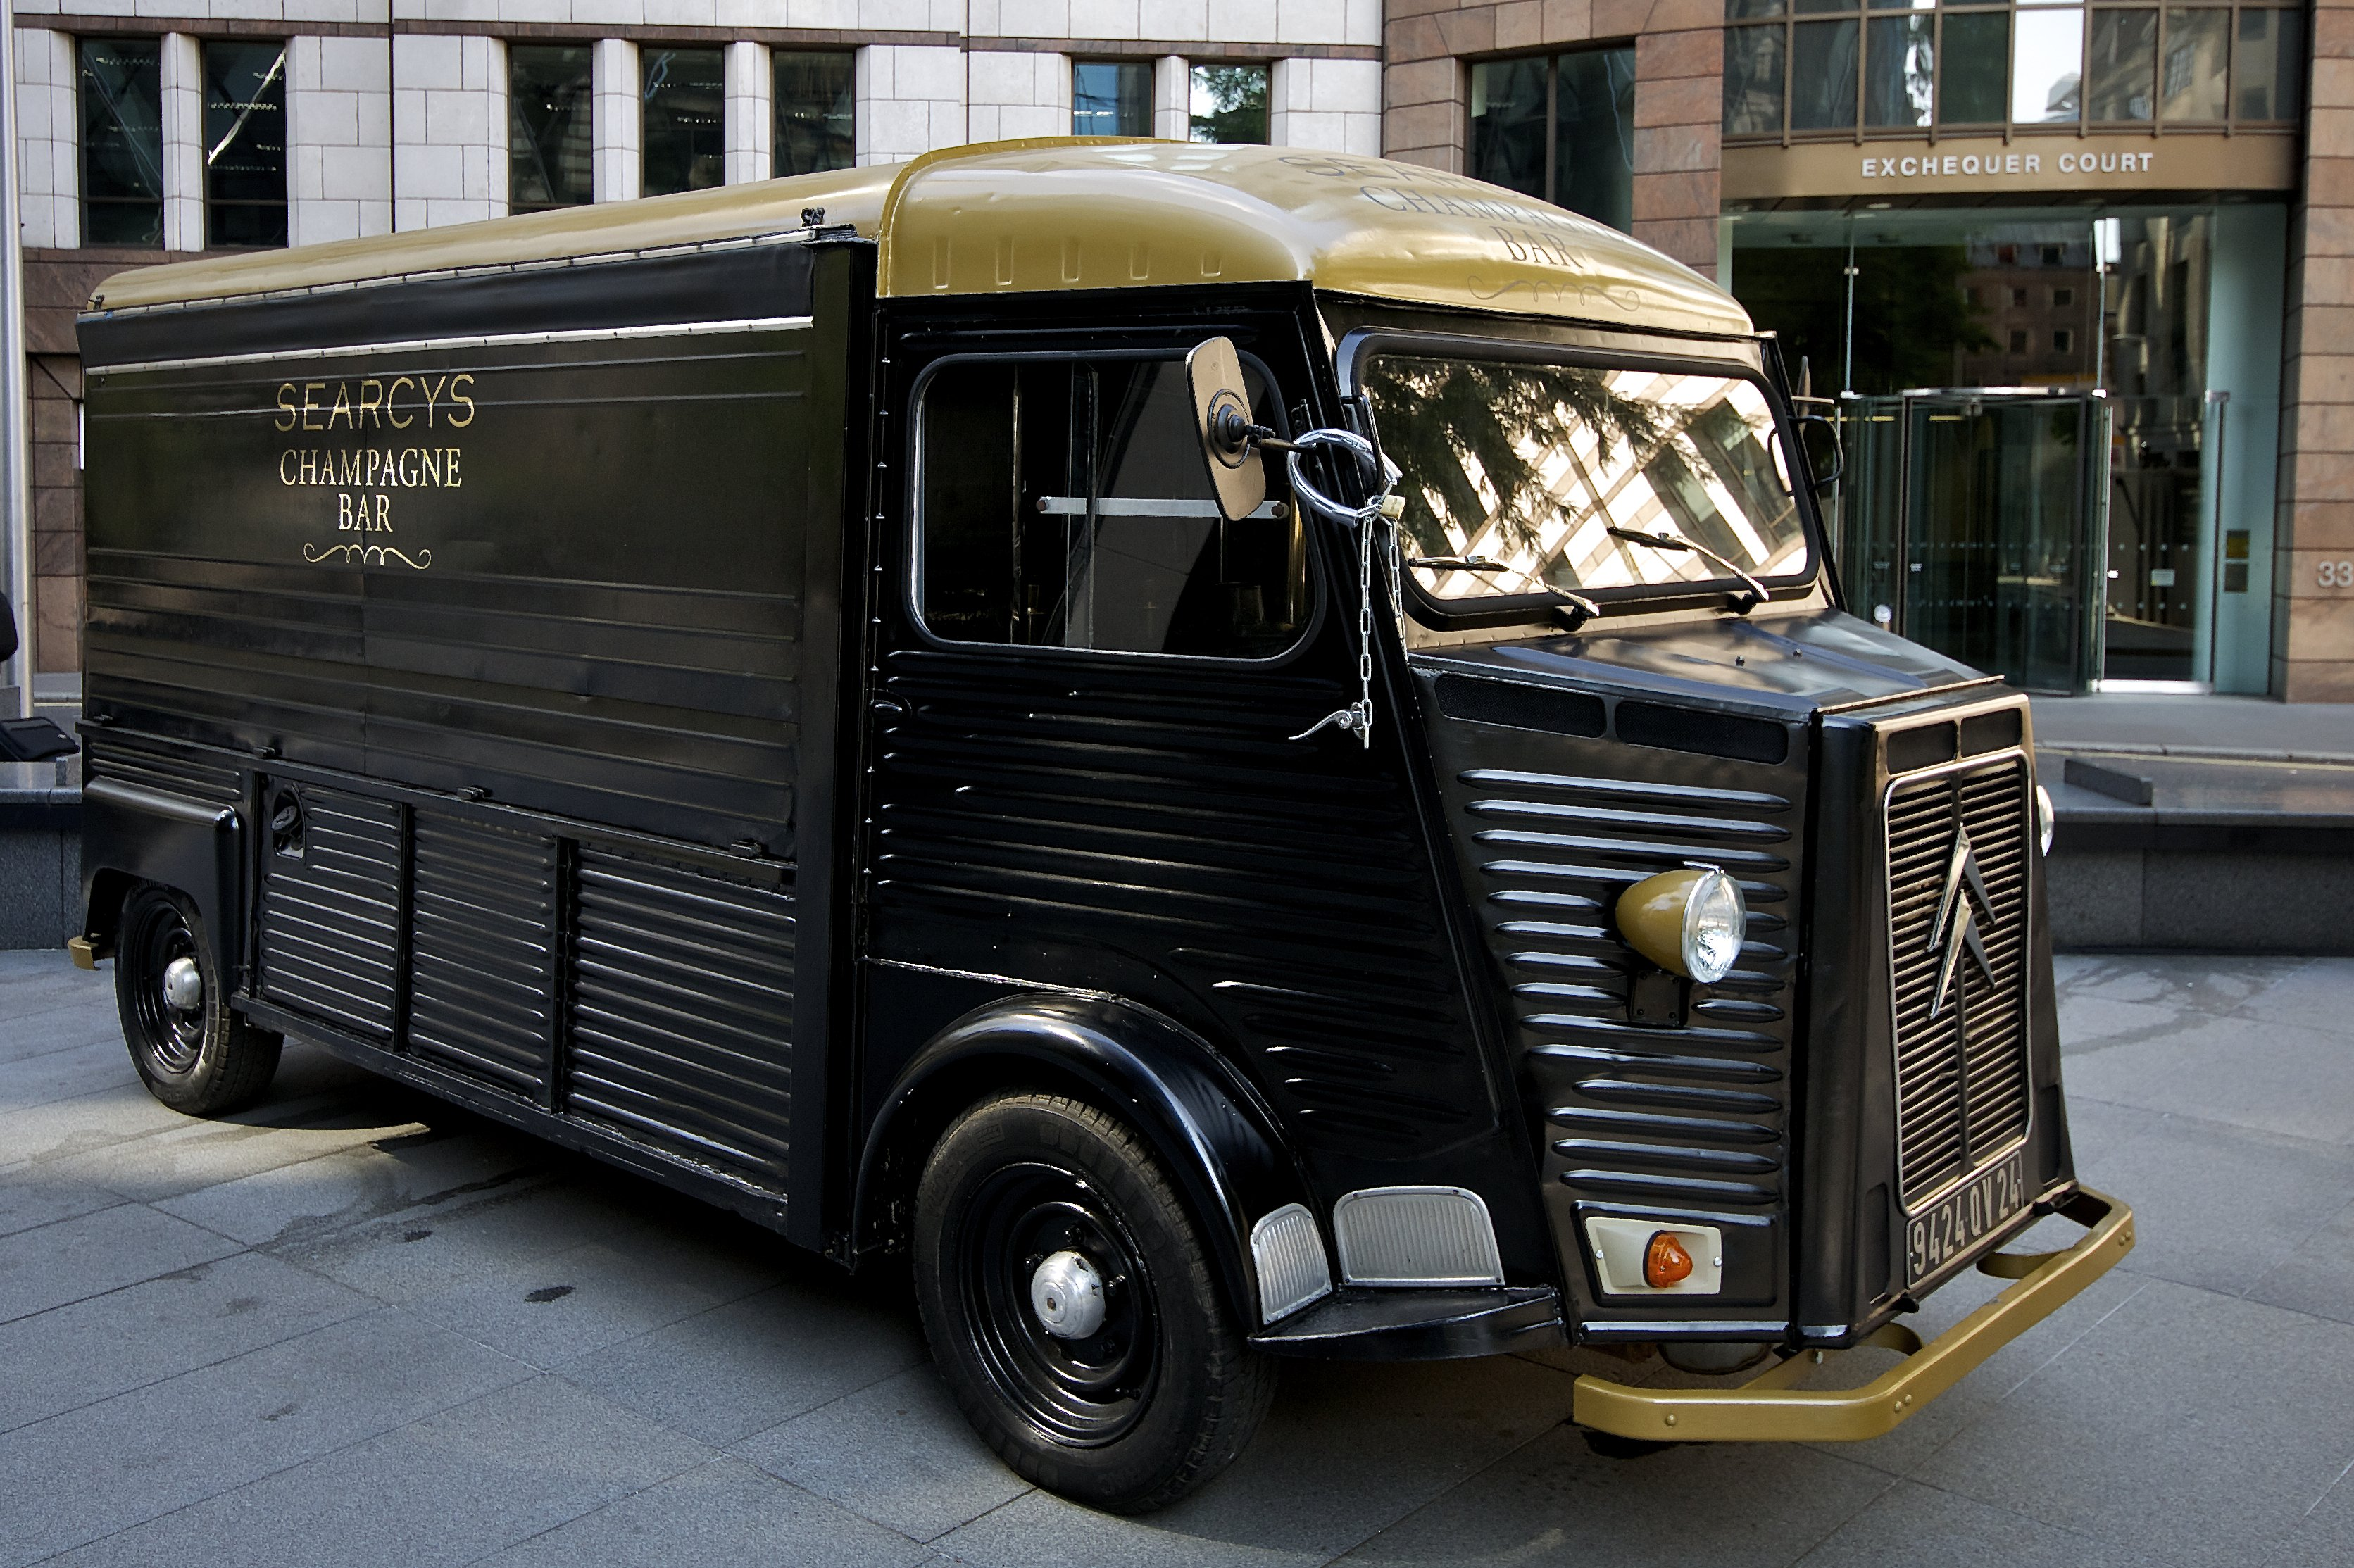 citroen type h classic cars french fourgonnette truck van food delivery wallpaper 3343x2227. Black Bedroom Furniture Sets. Home Design Ideas